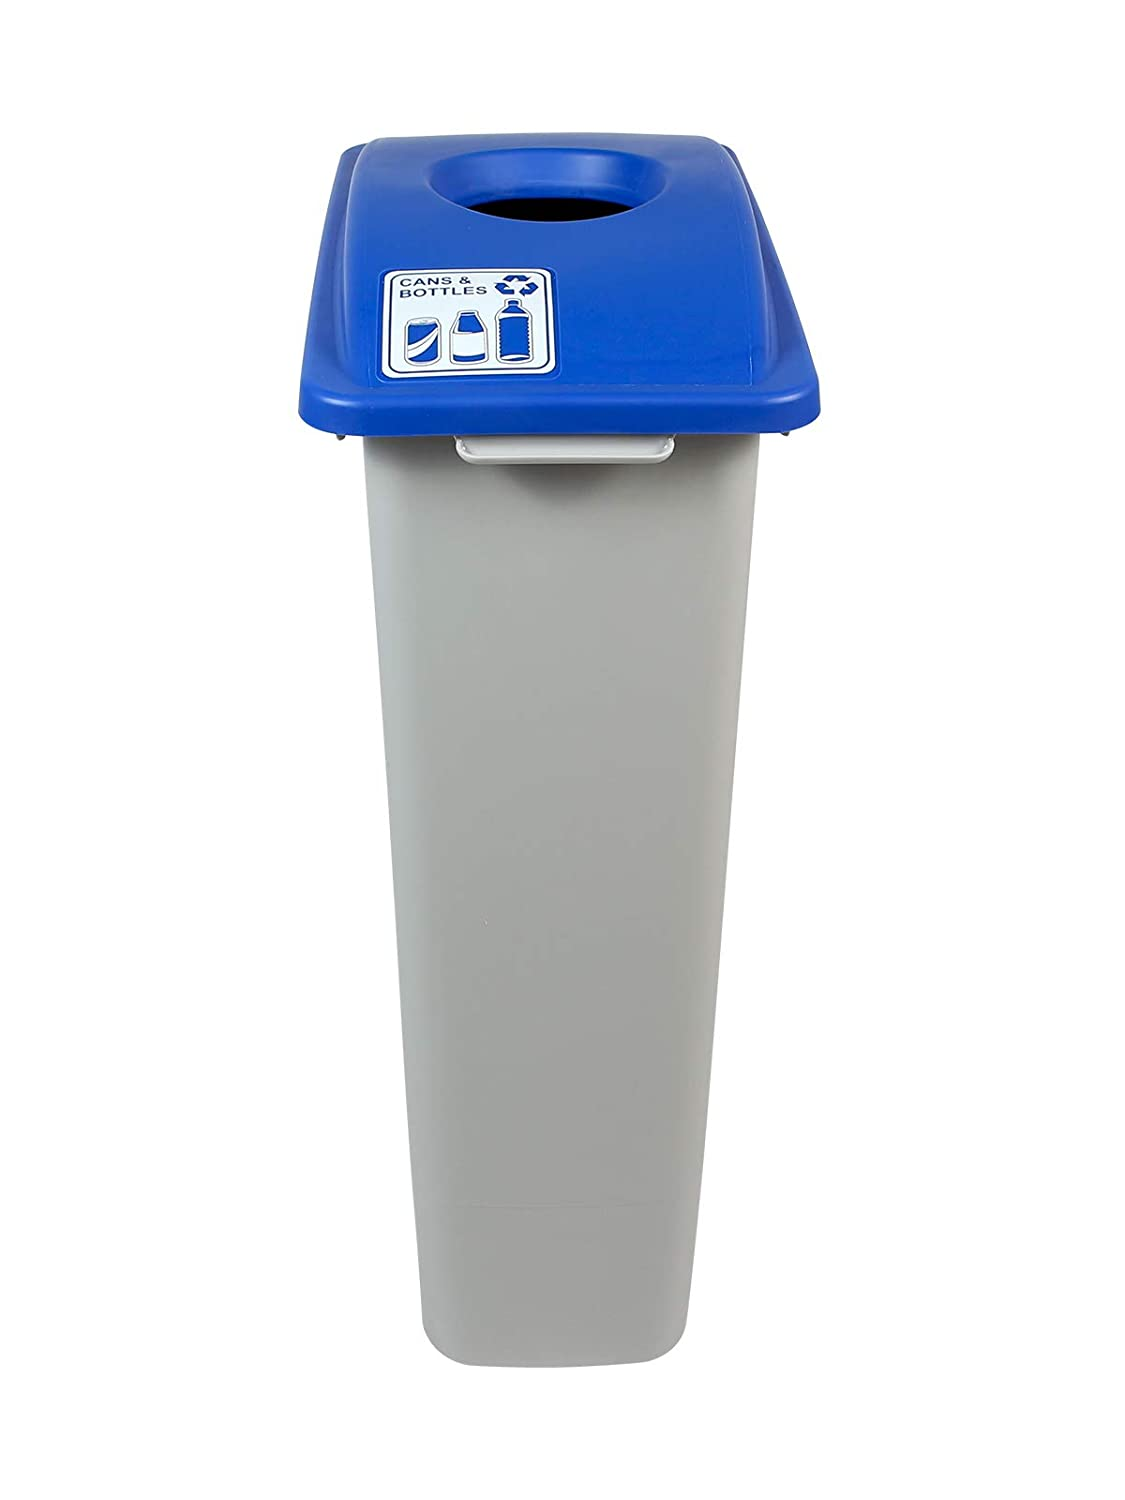 TM - Single 23 Gallon Recycling Bin Busch Systems Waste Watcher Cans /& Bottles